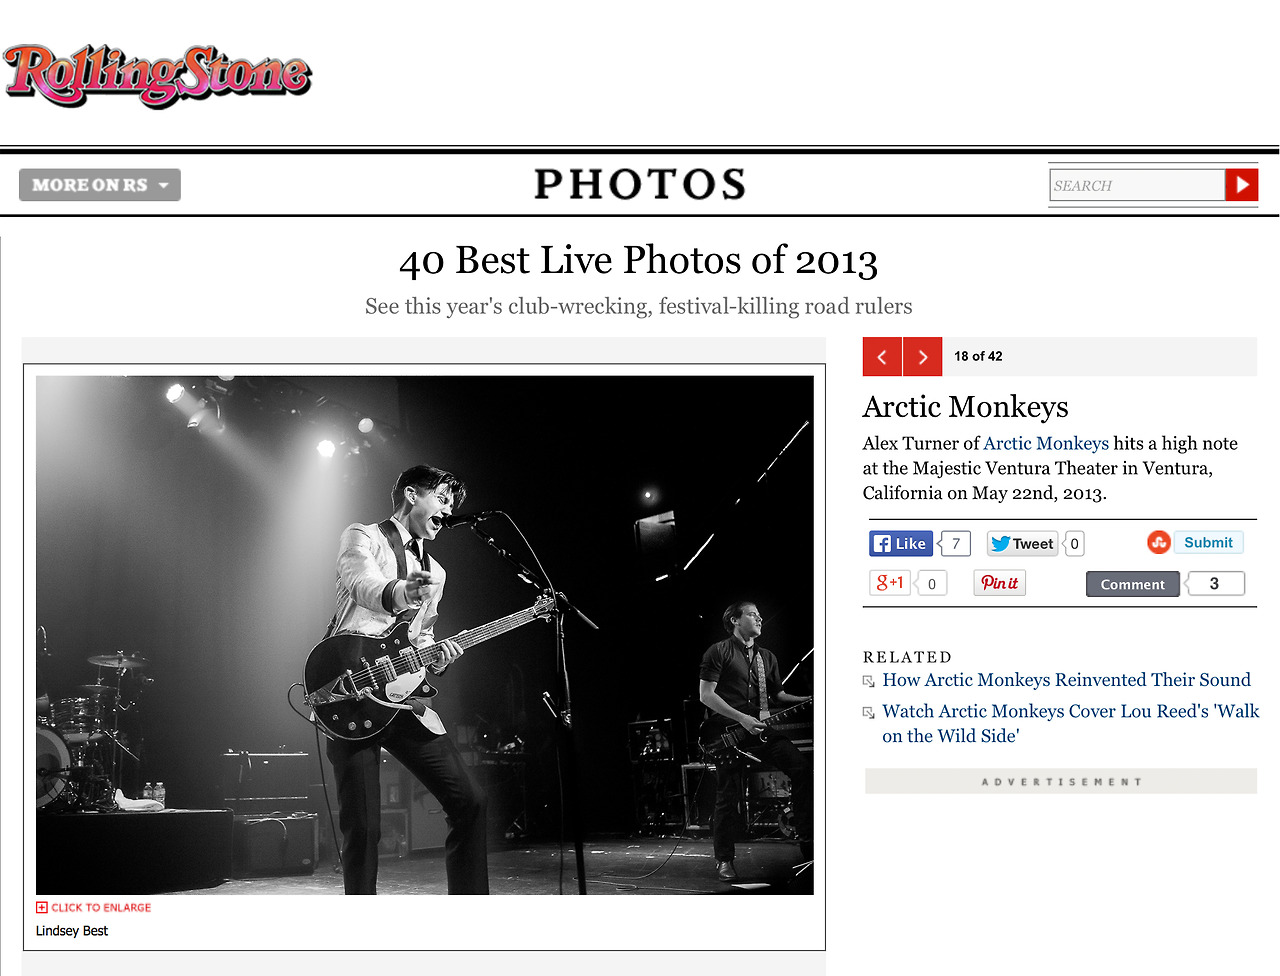 Rolling Stone included one of my photos of   Arctic Monkeys   in their end of the year  Best Live Photos of 2013 gallery . Cool. (I have a few others in their  full 2013 gallery  as well.)    http://www.rollingstone.com/music/pictures/40-best-live-photos-of-2013-20131217/arctic-monkeys-0254842     All Images Copyright © Lindsey Best. Please do not steal my images without prior consent & proper credit.  If you're interested in licensing an image or acquiring a print, please email me.     www.LindseyBest.com